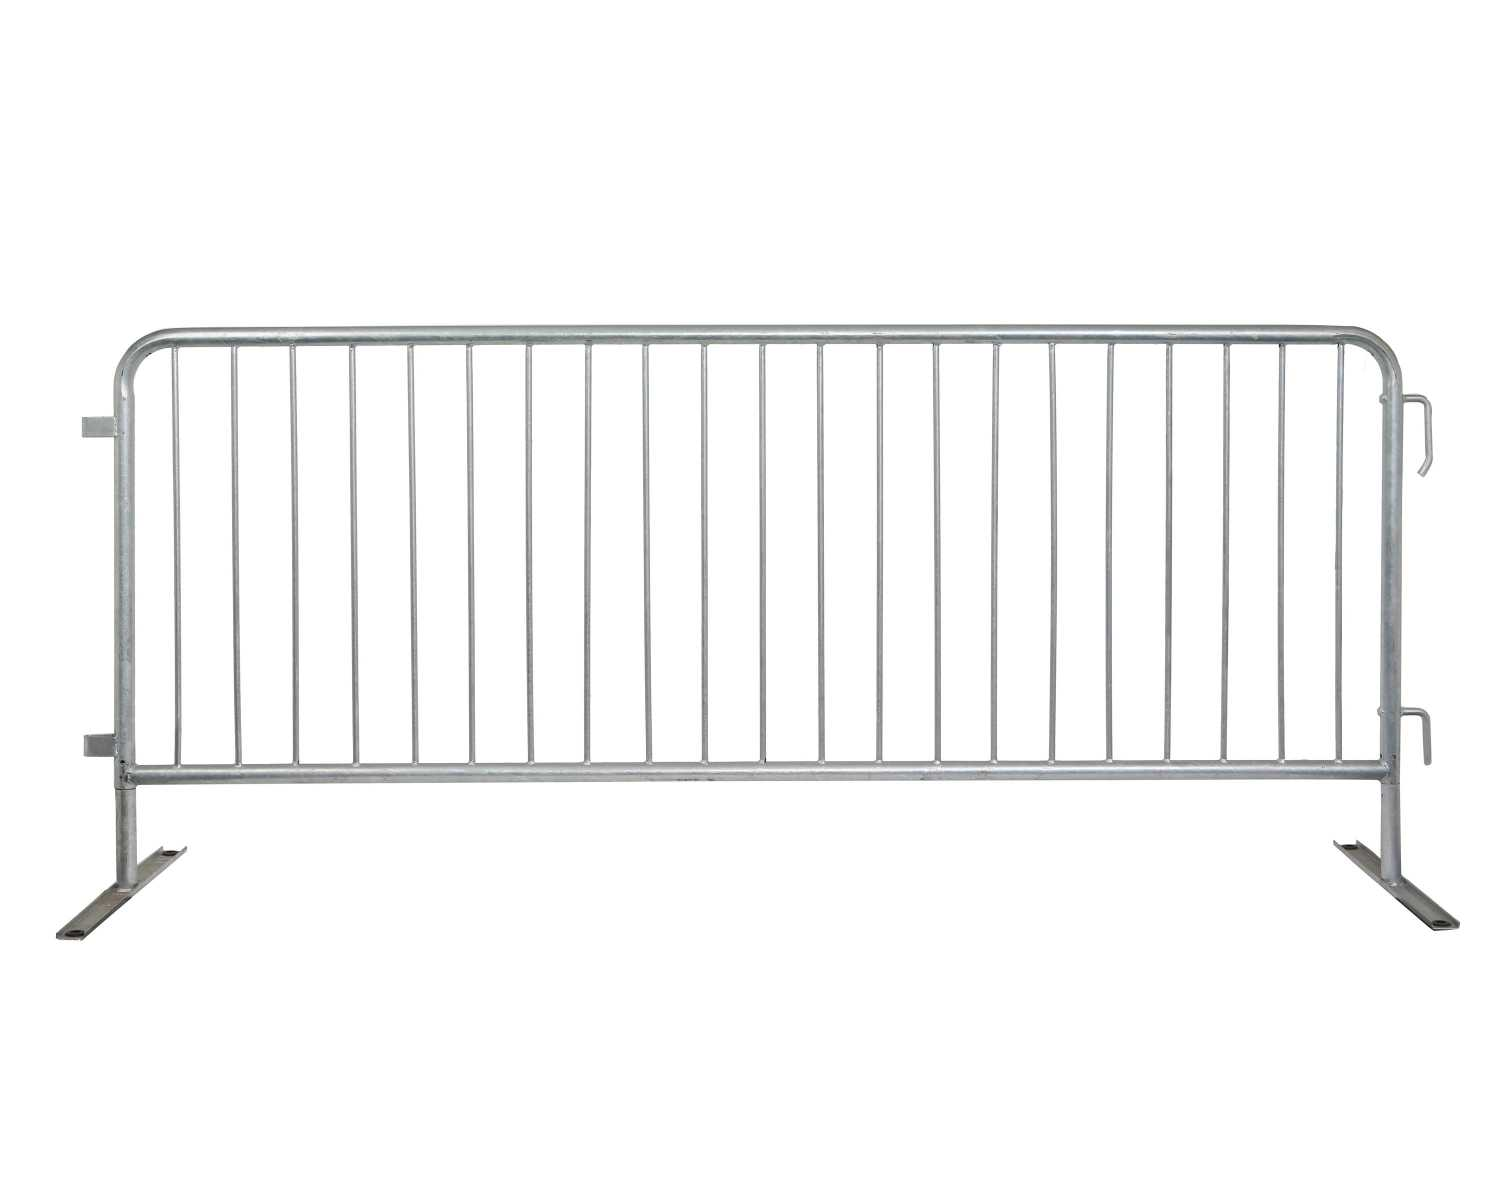 Hire Metal crowd control barriers